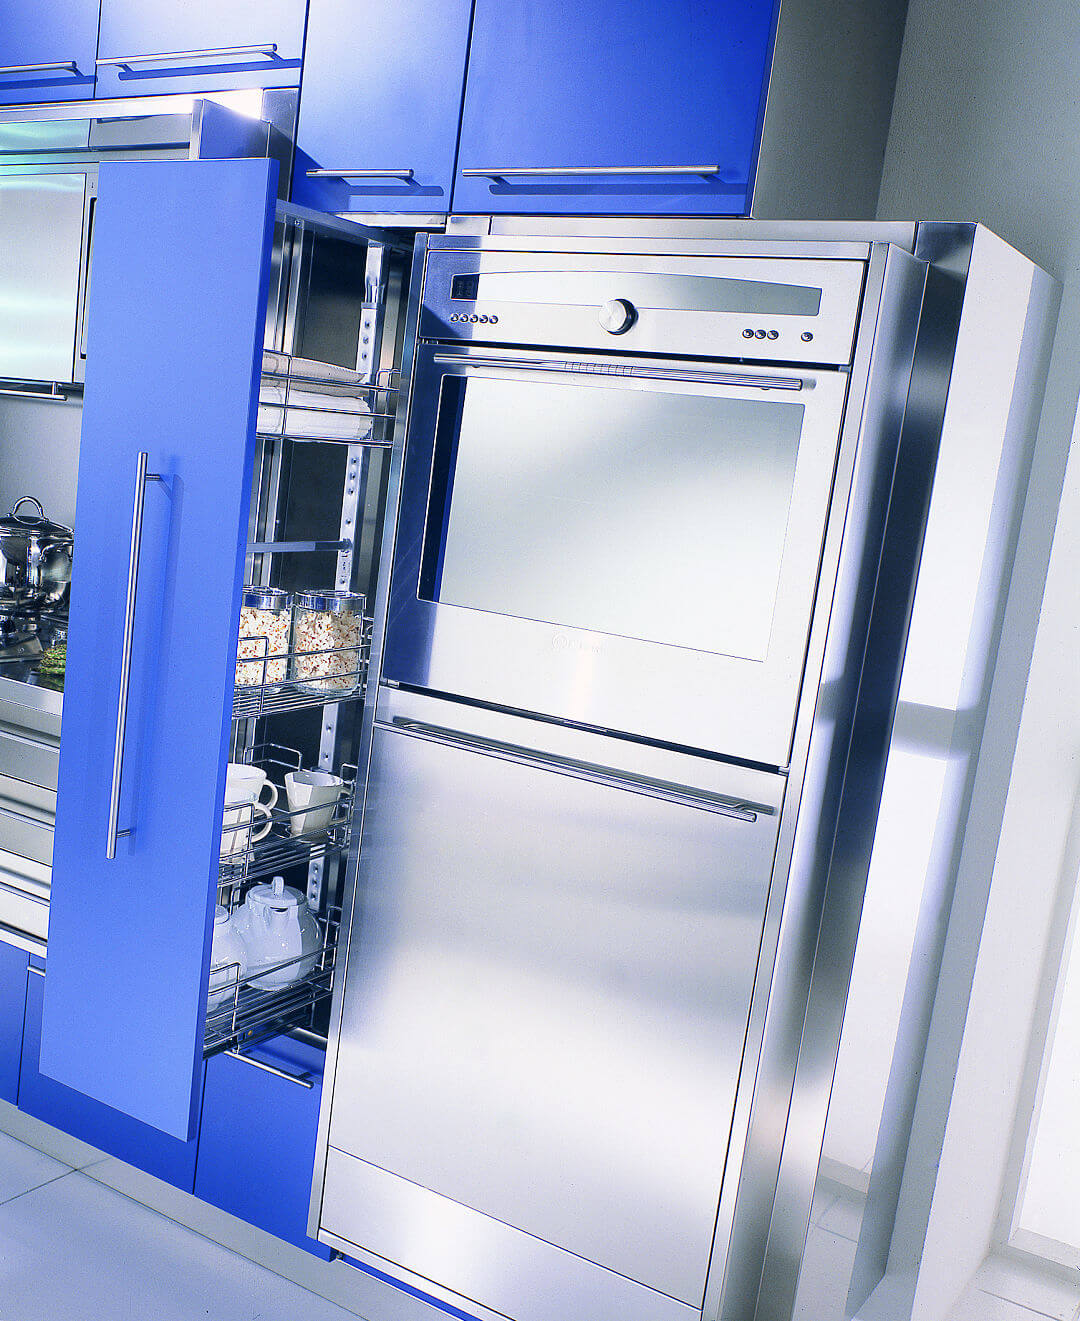 Arca Cucine Italy - Domestic stainless steel kitchens - Wall - Telescopic Column